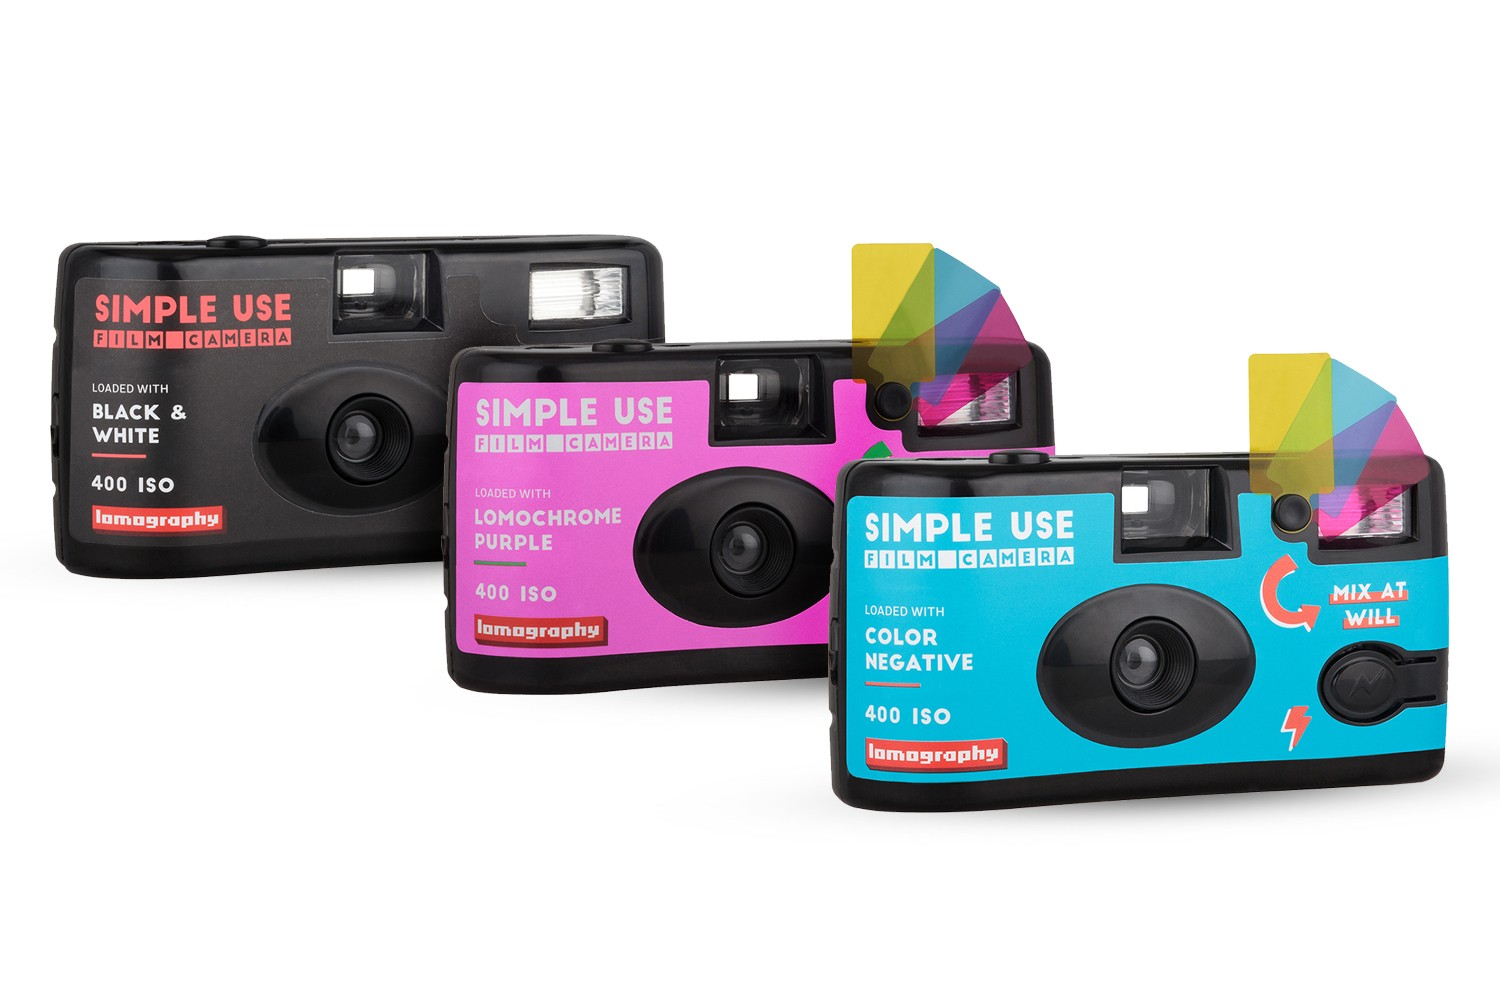 https://catalog.shop.lomography.com/catalog/product/cache/18/image/9df78eab33525d08d6e5fb8d27136e95/b/u/bundled_sufcs.jpg